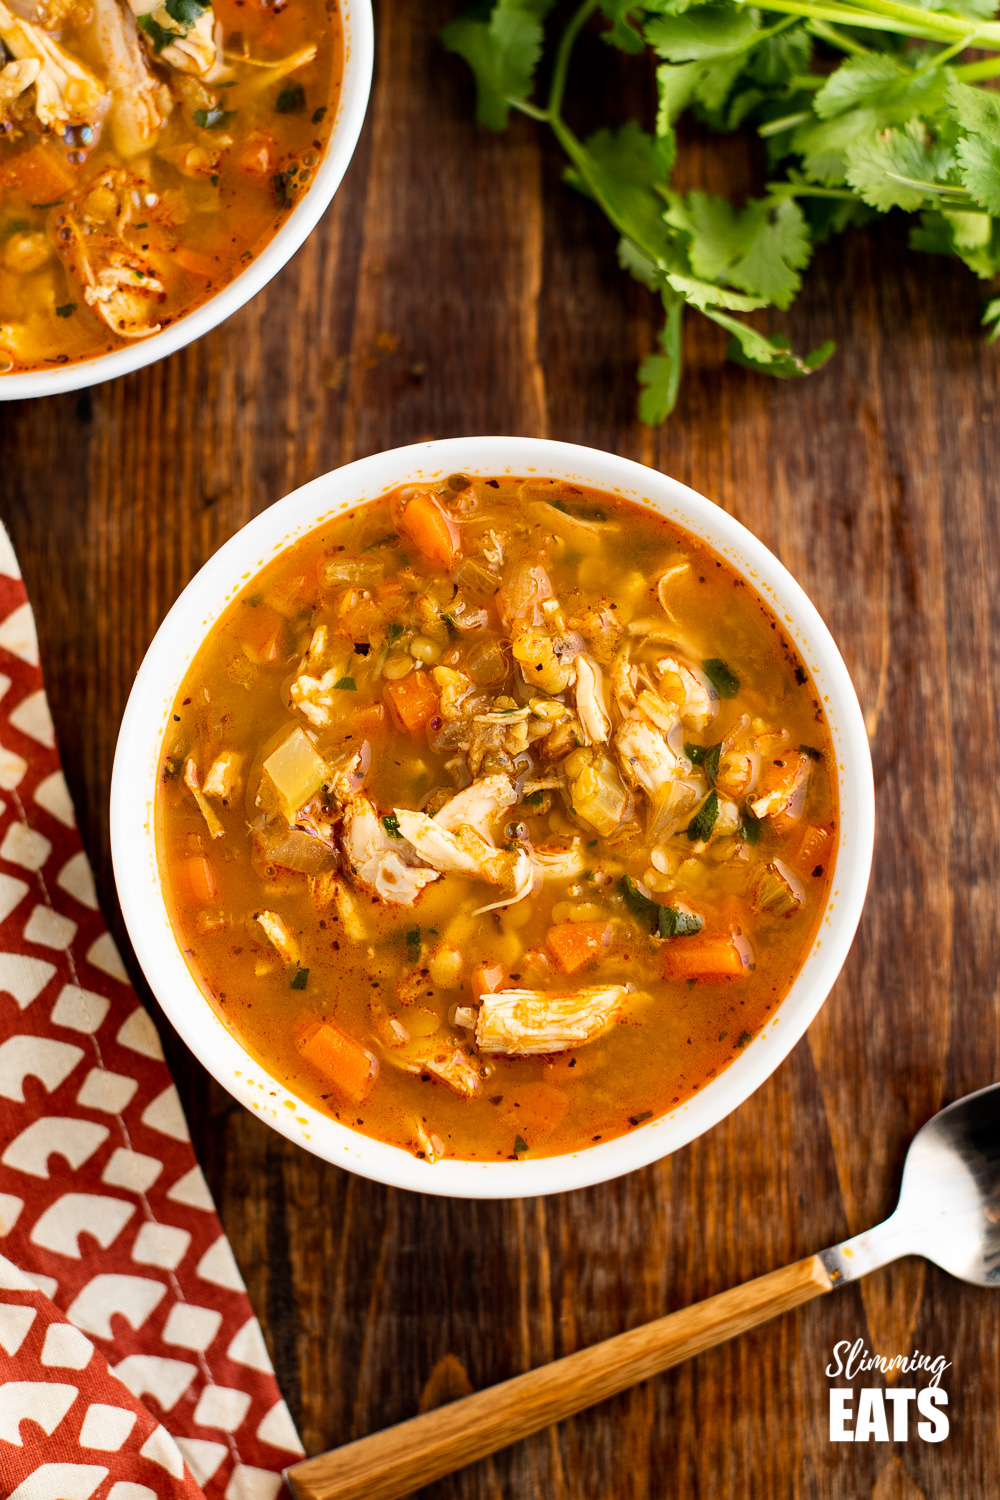 over the top view of chicken and lentil soup in white bowl on wooden board